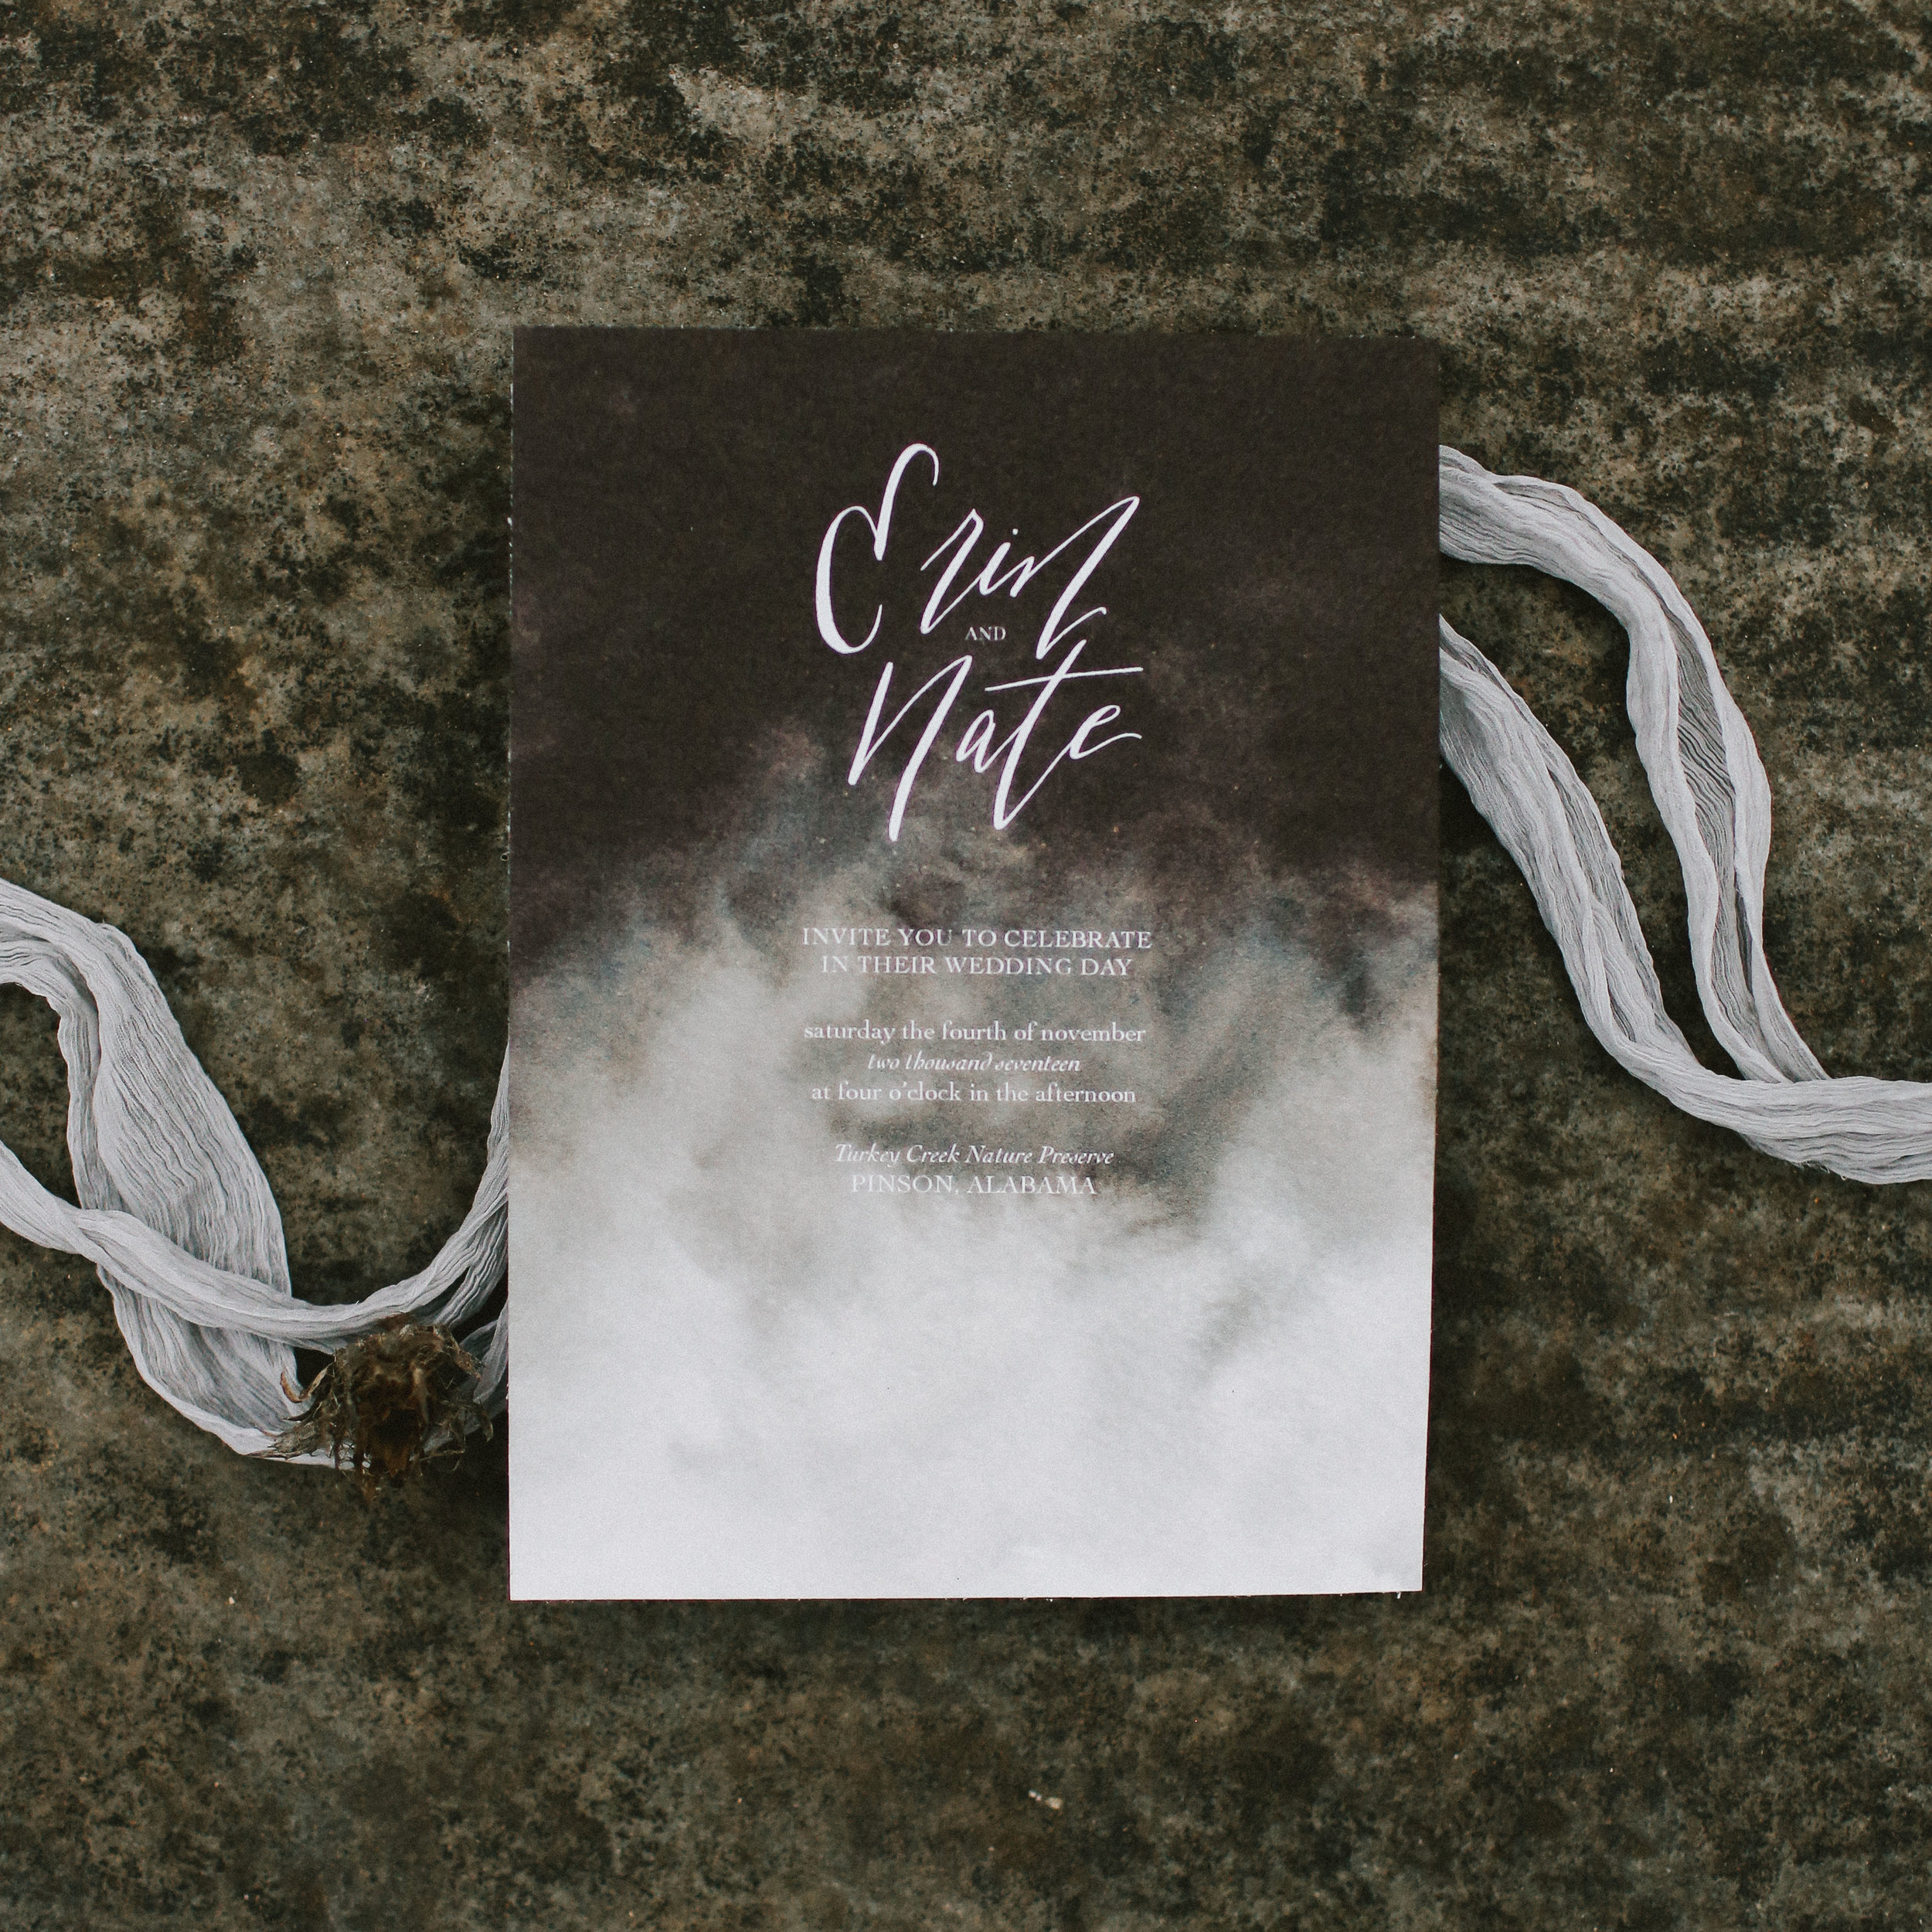 Watercolor Wedding Invitations - Moody Black and White Invitations - Minimalist Wedding Invitations - Fall Wedding Ideas